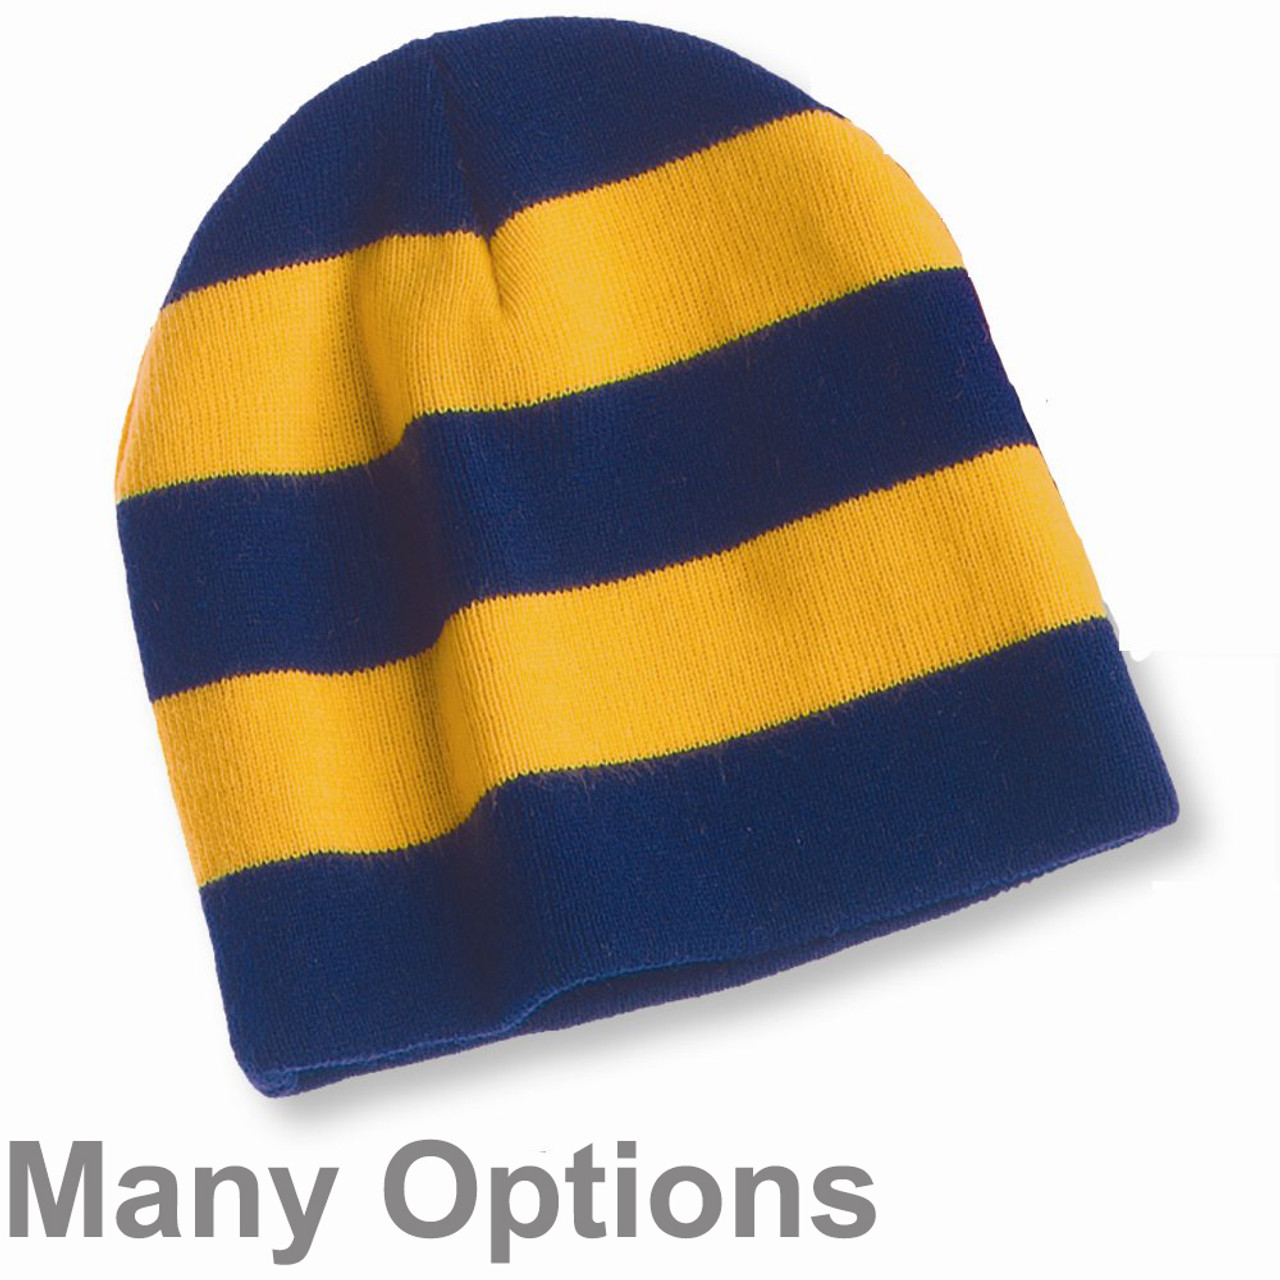 c55523eb49b Unisex Knit Collegiate Rugby Stripe Winter Beanie Hat - Assorted Colors